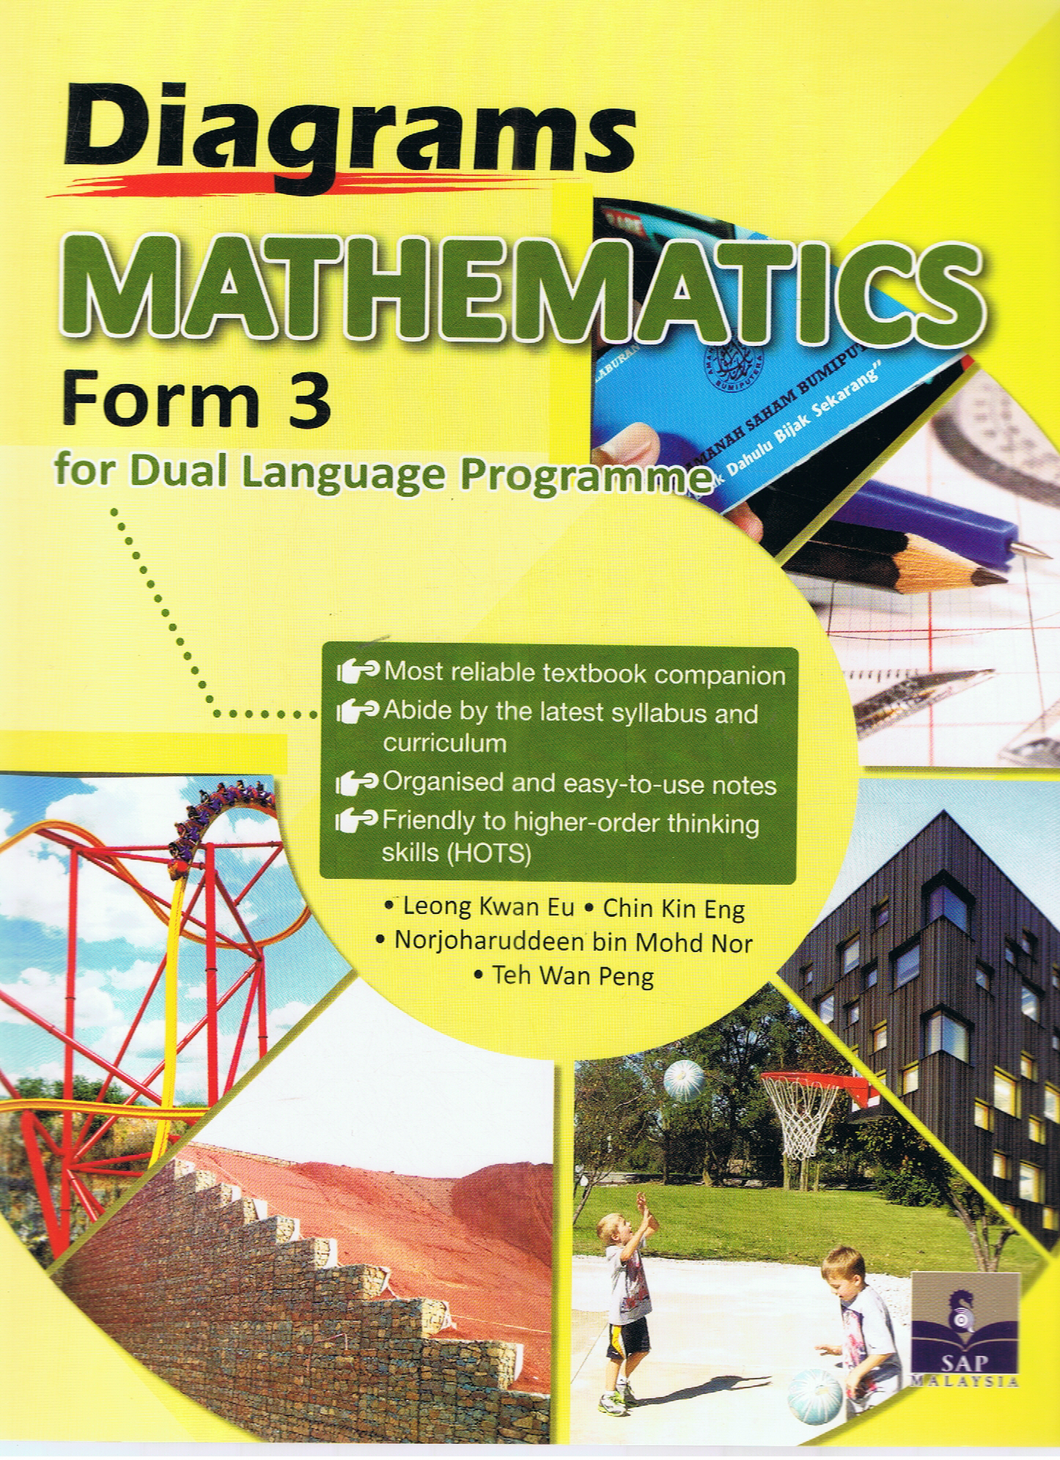 Diagrams: Mathematics Form 3